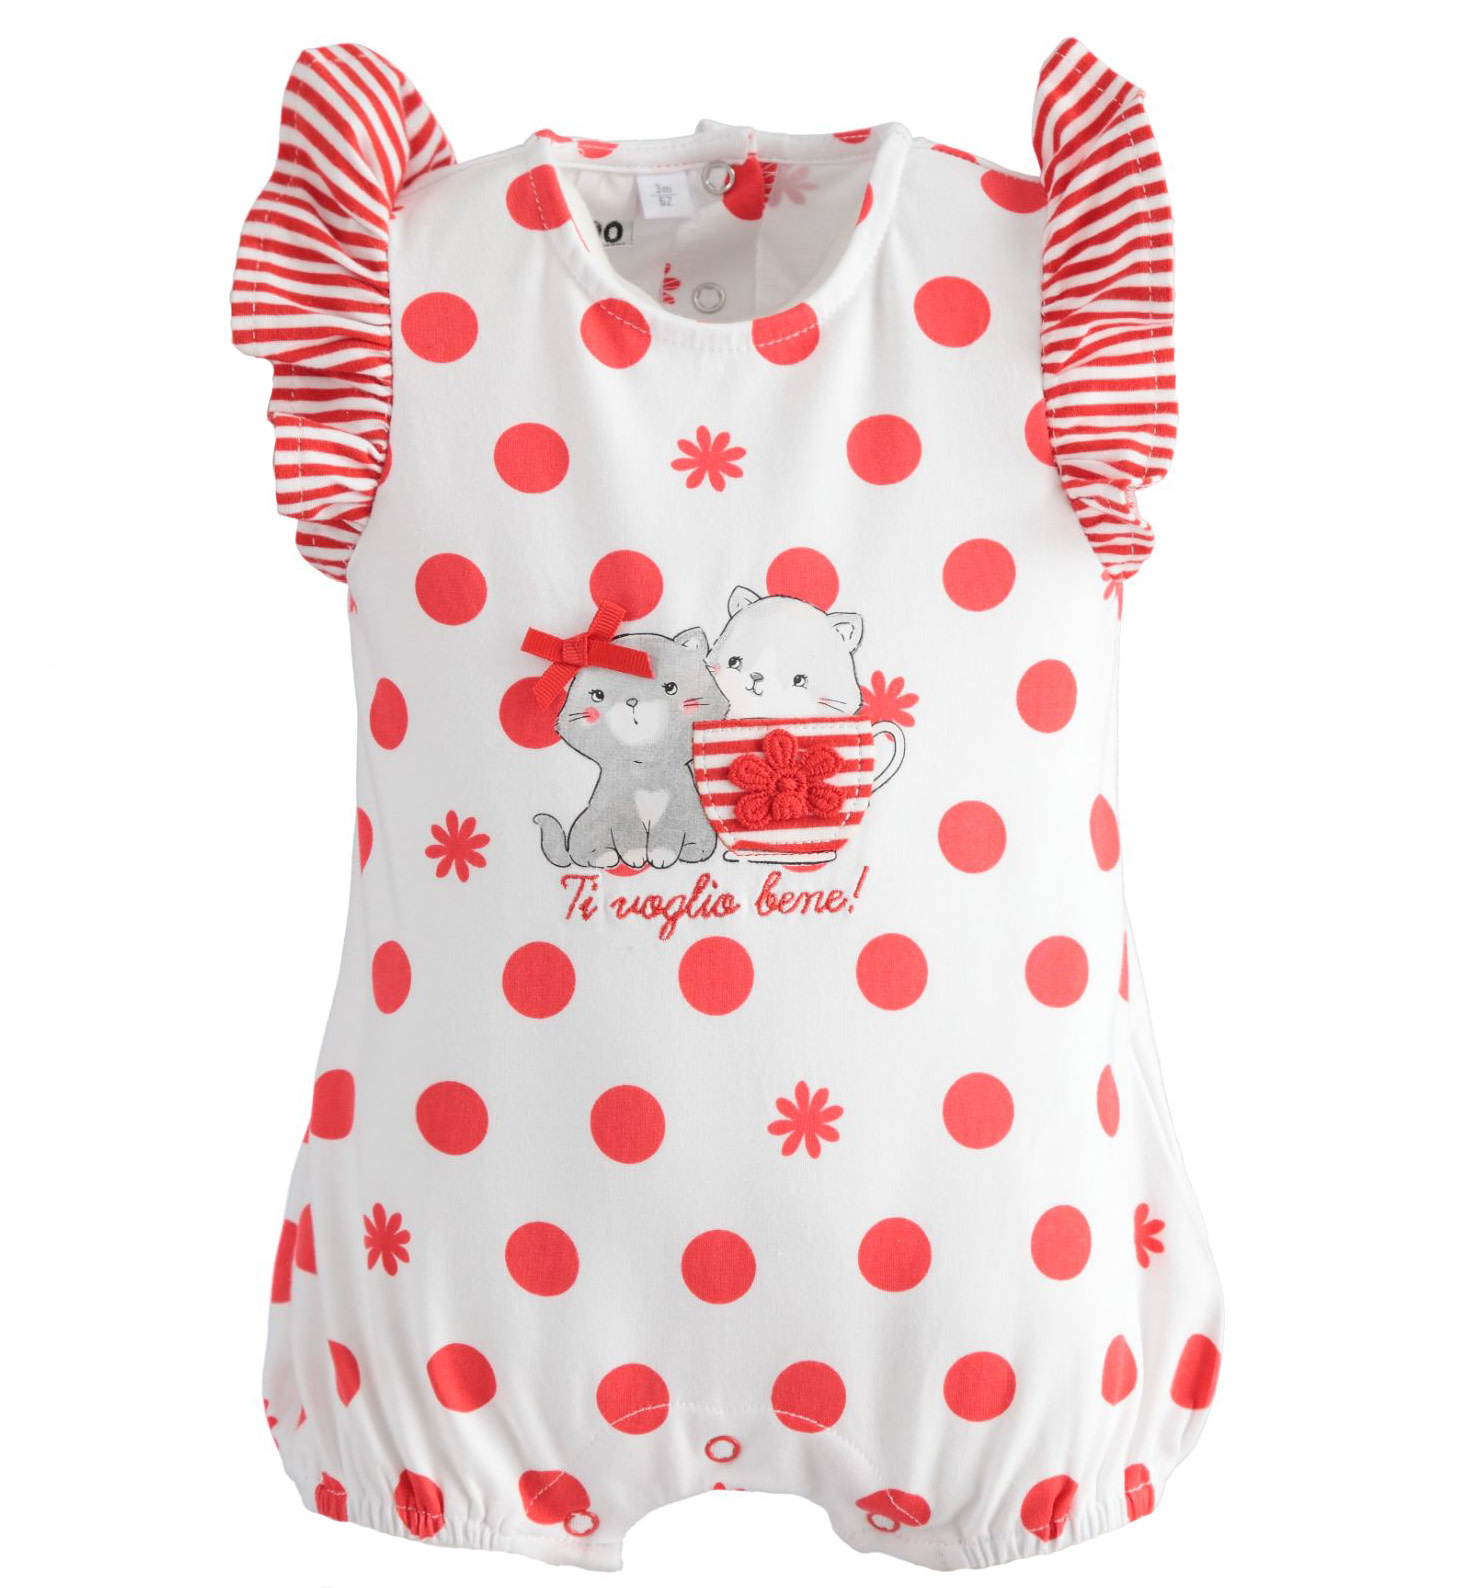 iDo iDo SS20 Baby Girl All in one romper red spot J129